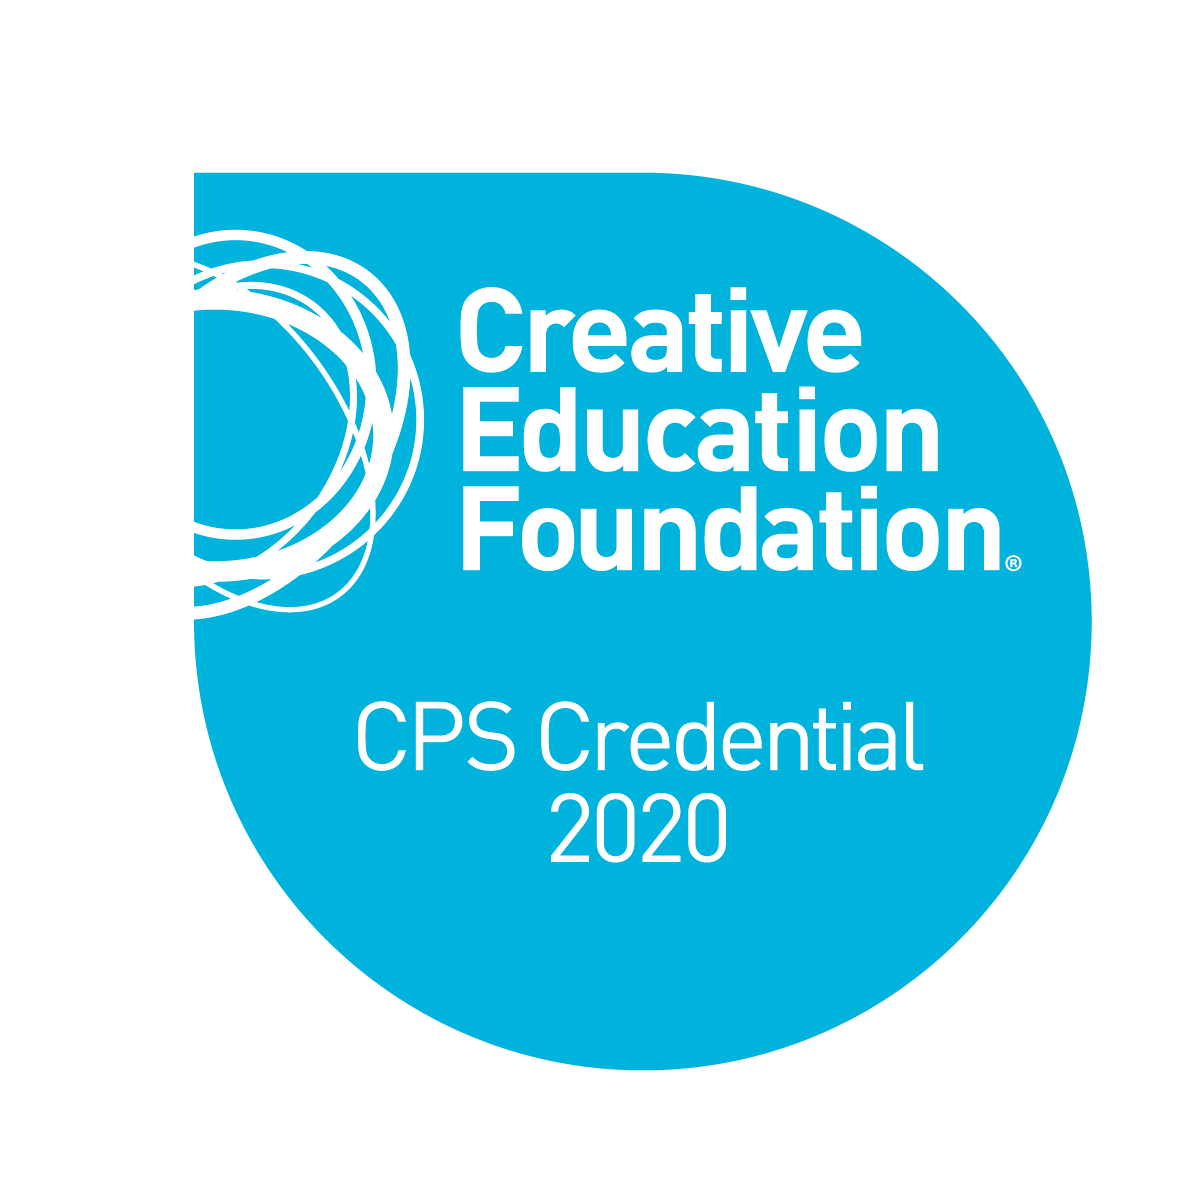 CEF_Badges_CPS-Credential-2020.png